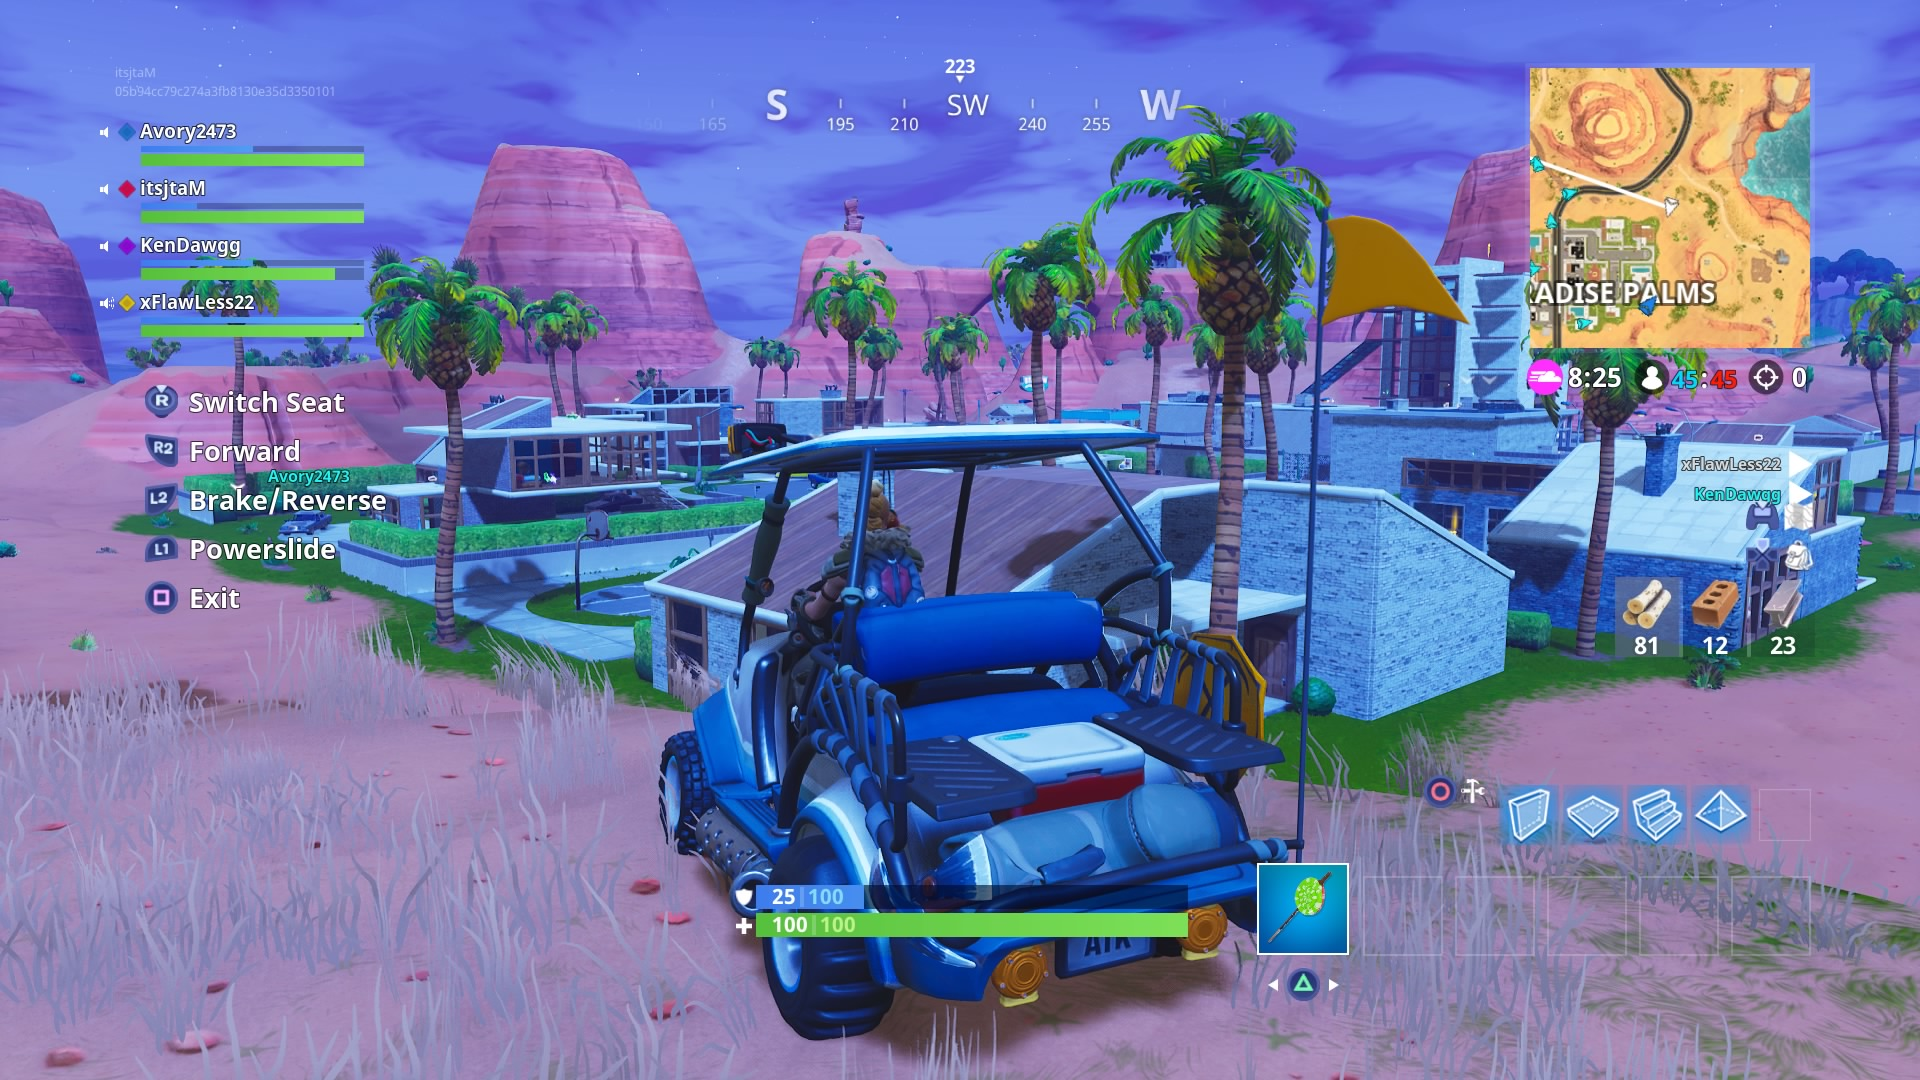 fortnite driving vehicle wallpaper background 64303